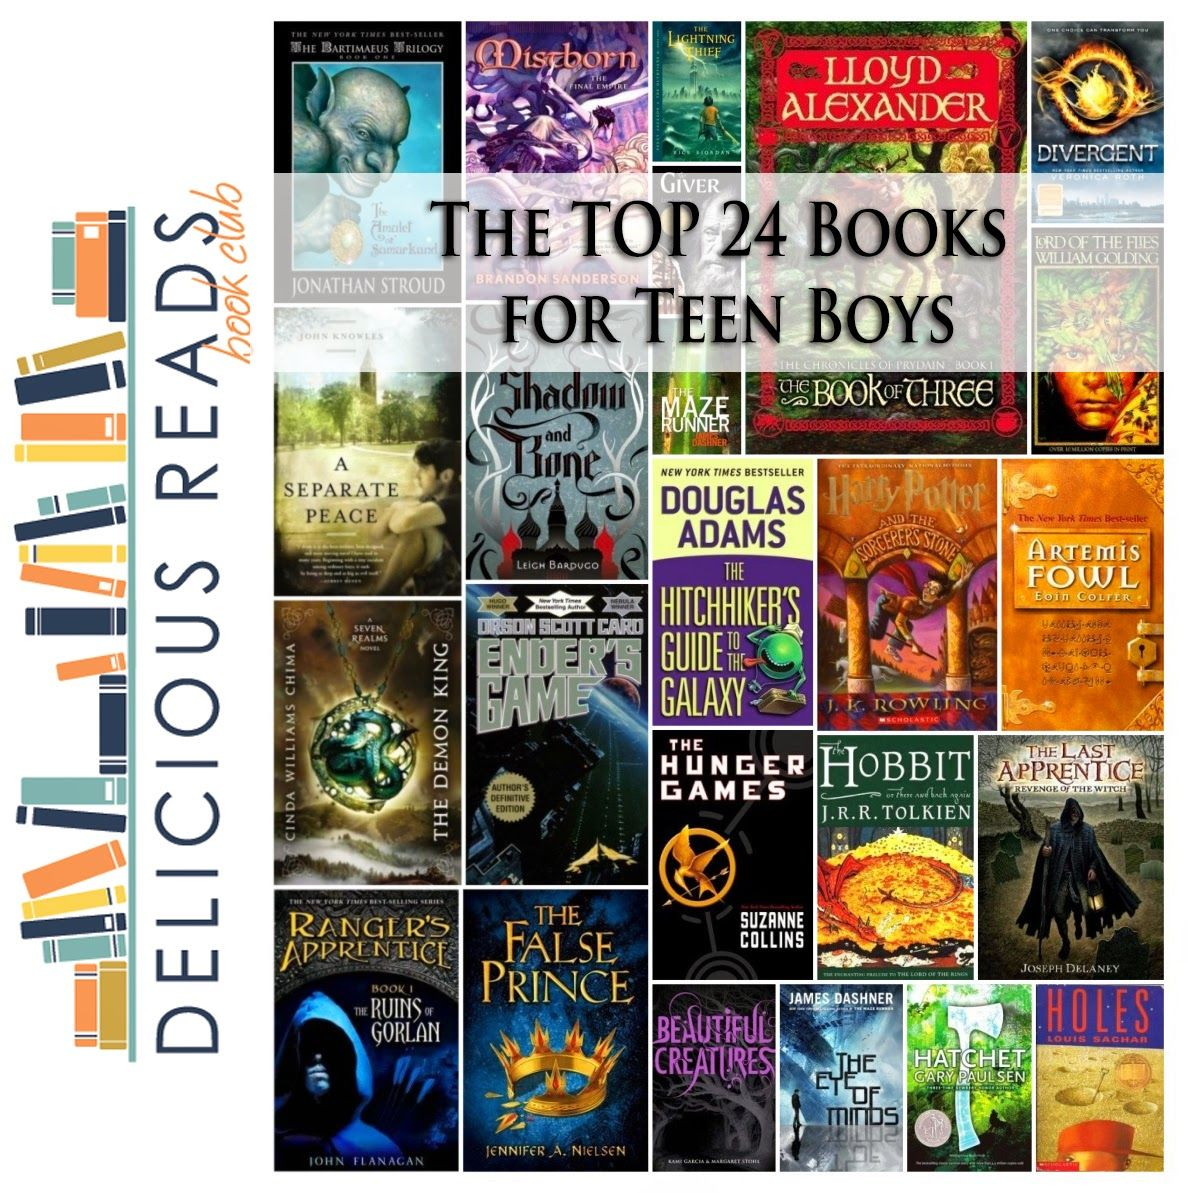 Top 24 Books For Teen Boys Great List By Robin Via Delicious Reads